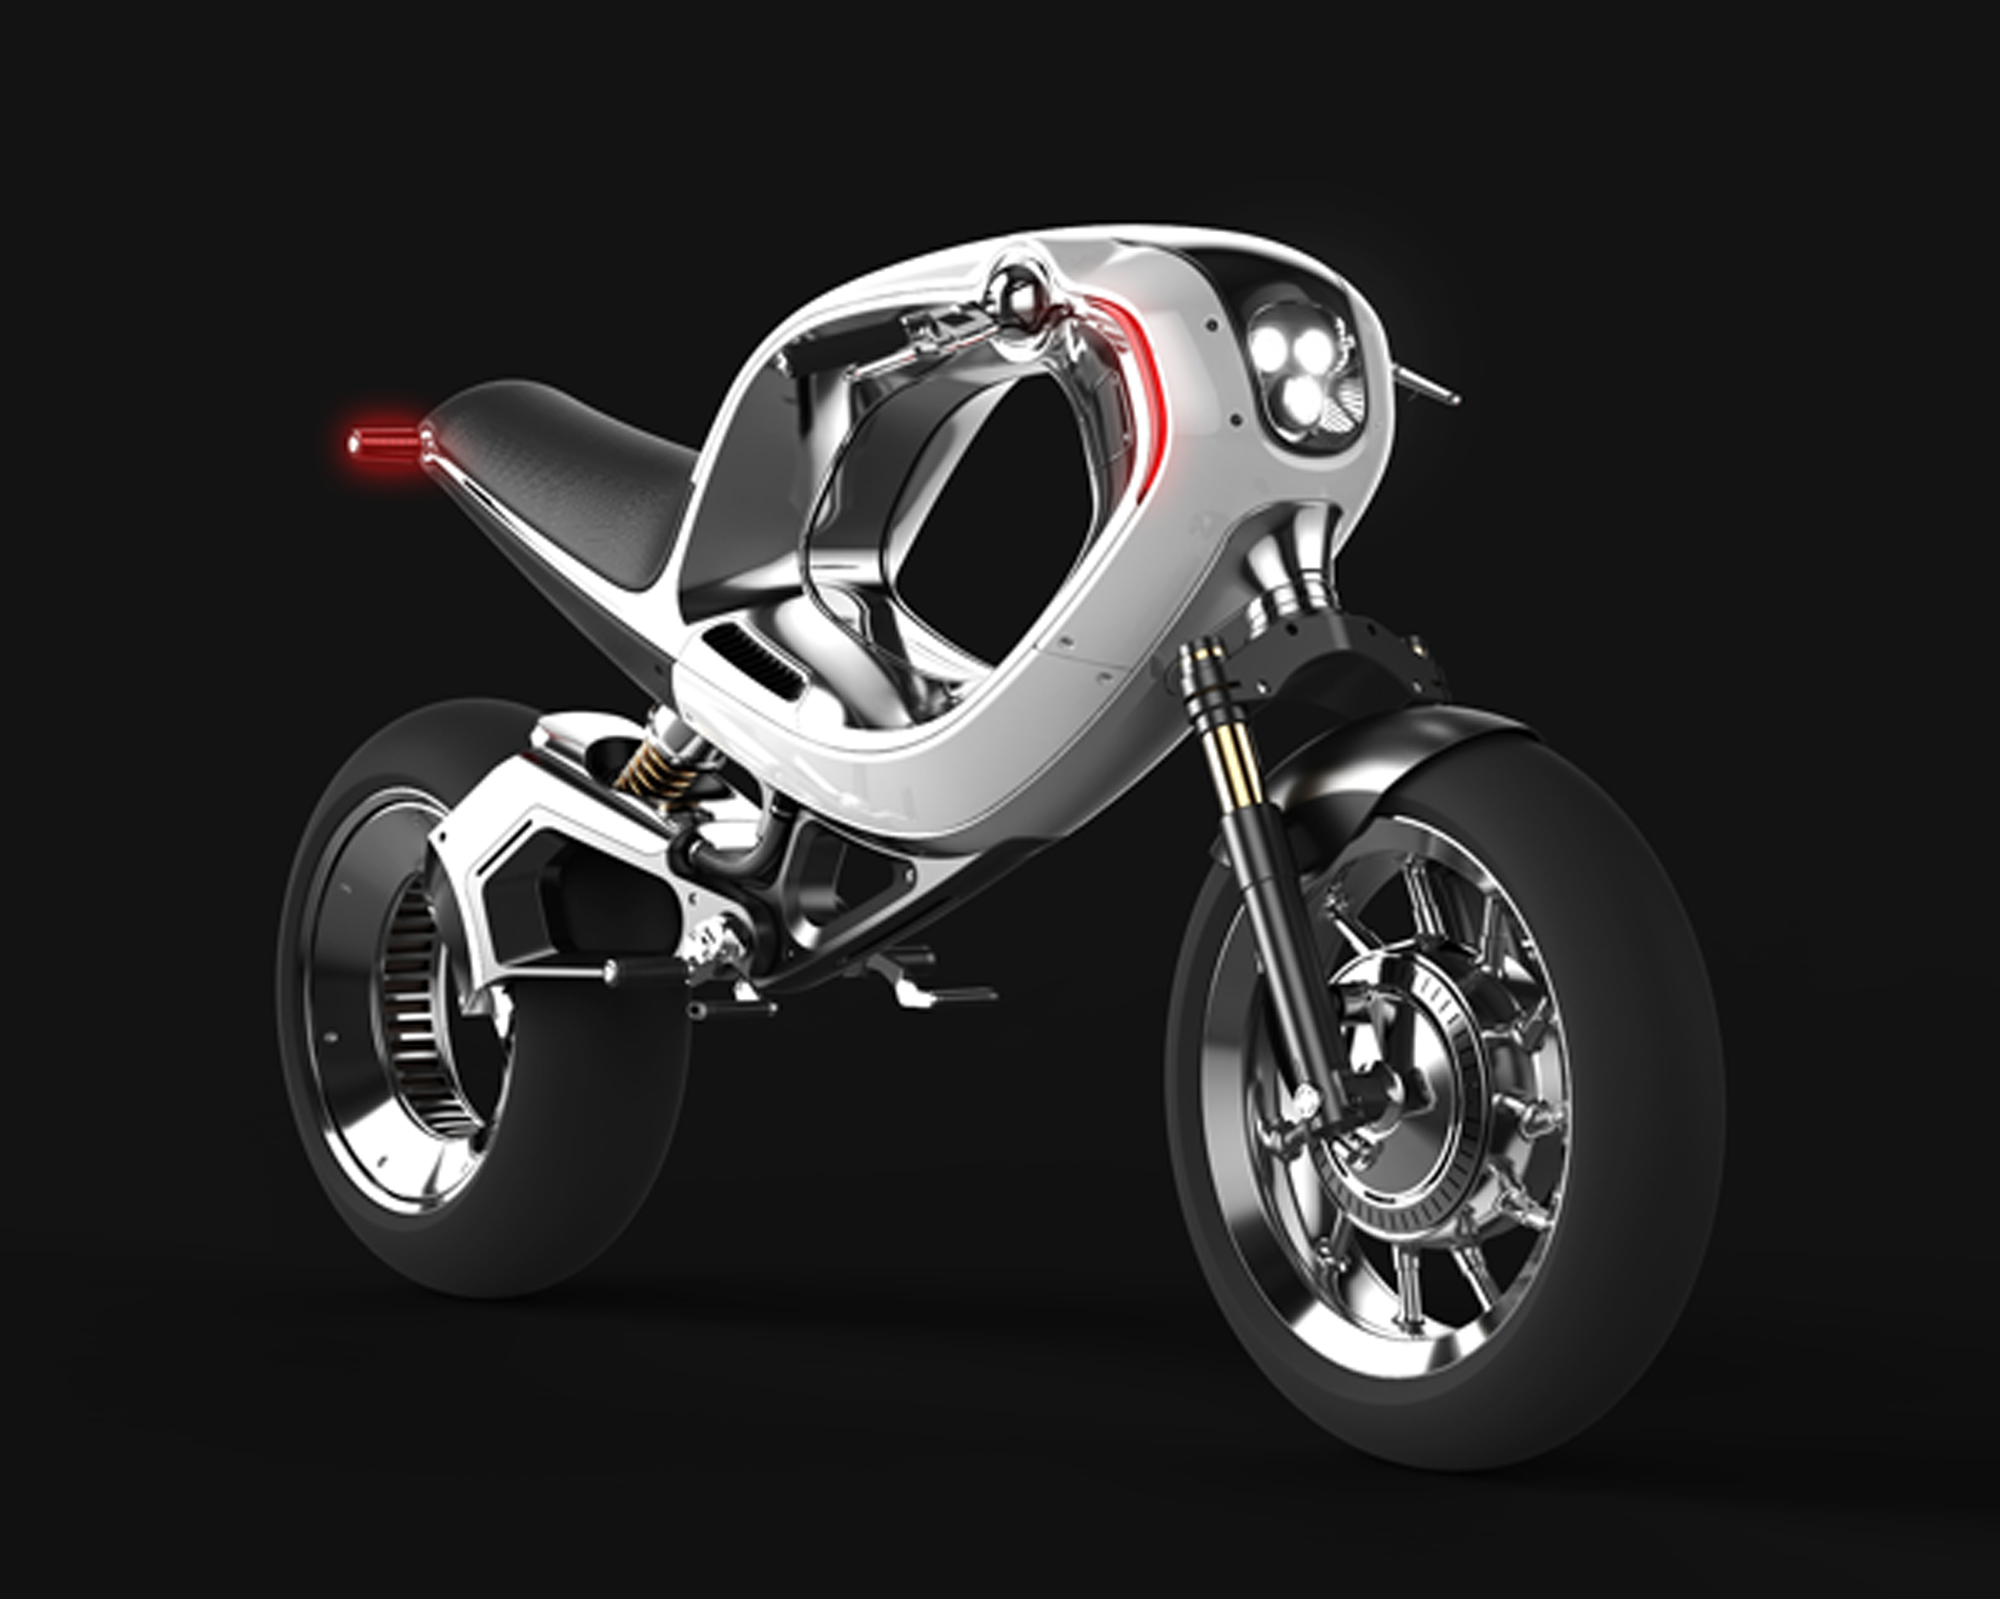 3D printing a whole electric bike is near. Image via: Frog Design